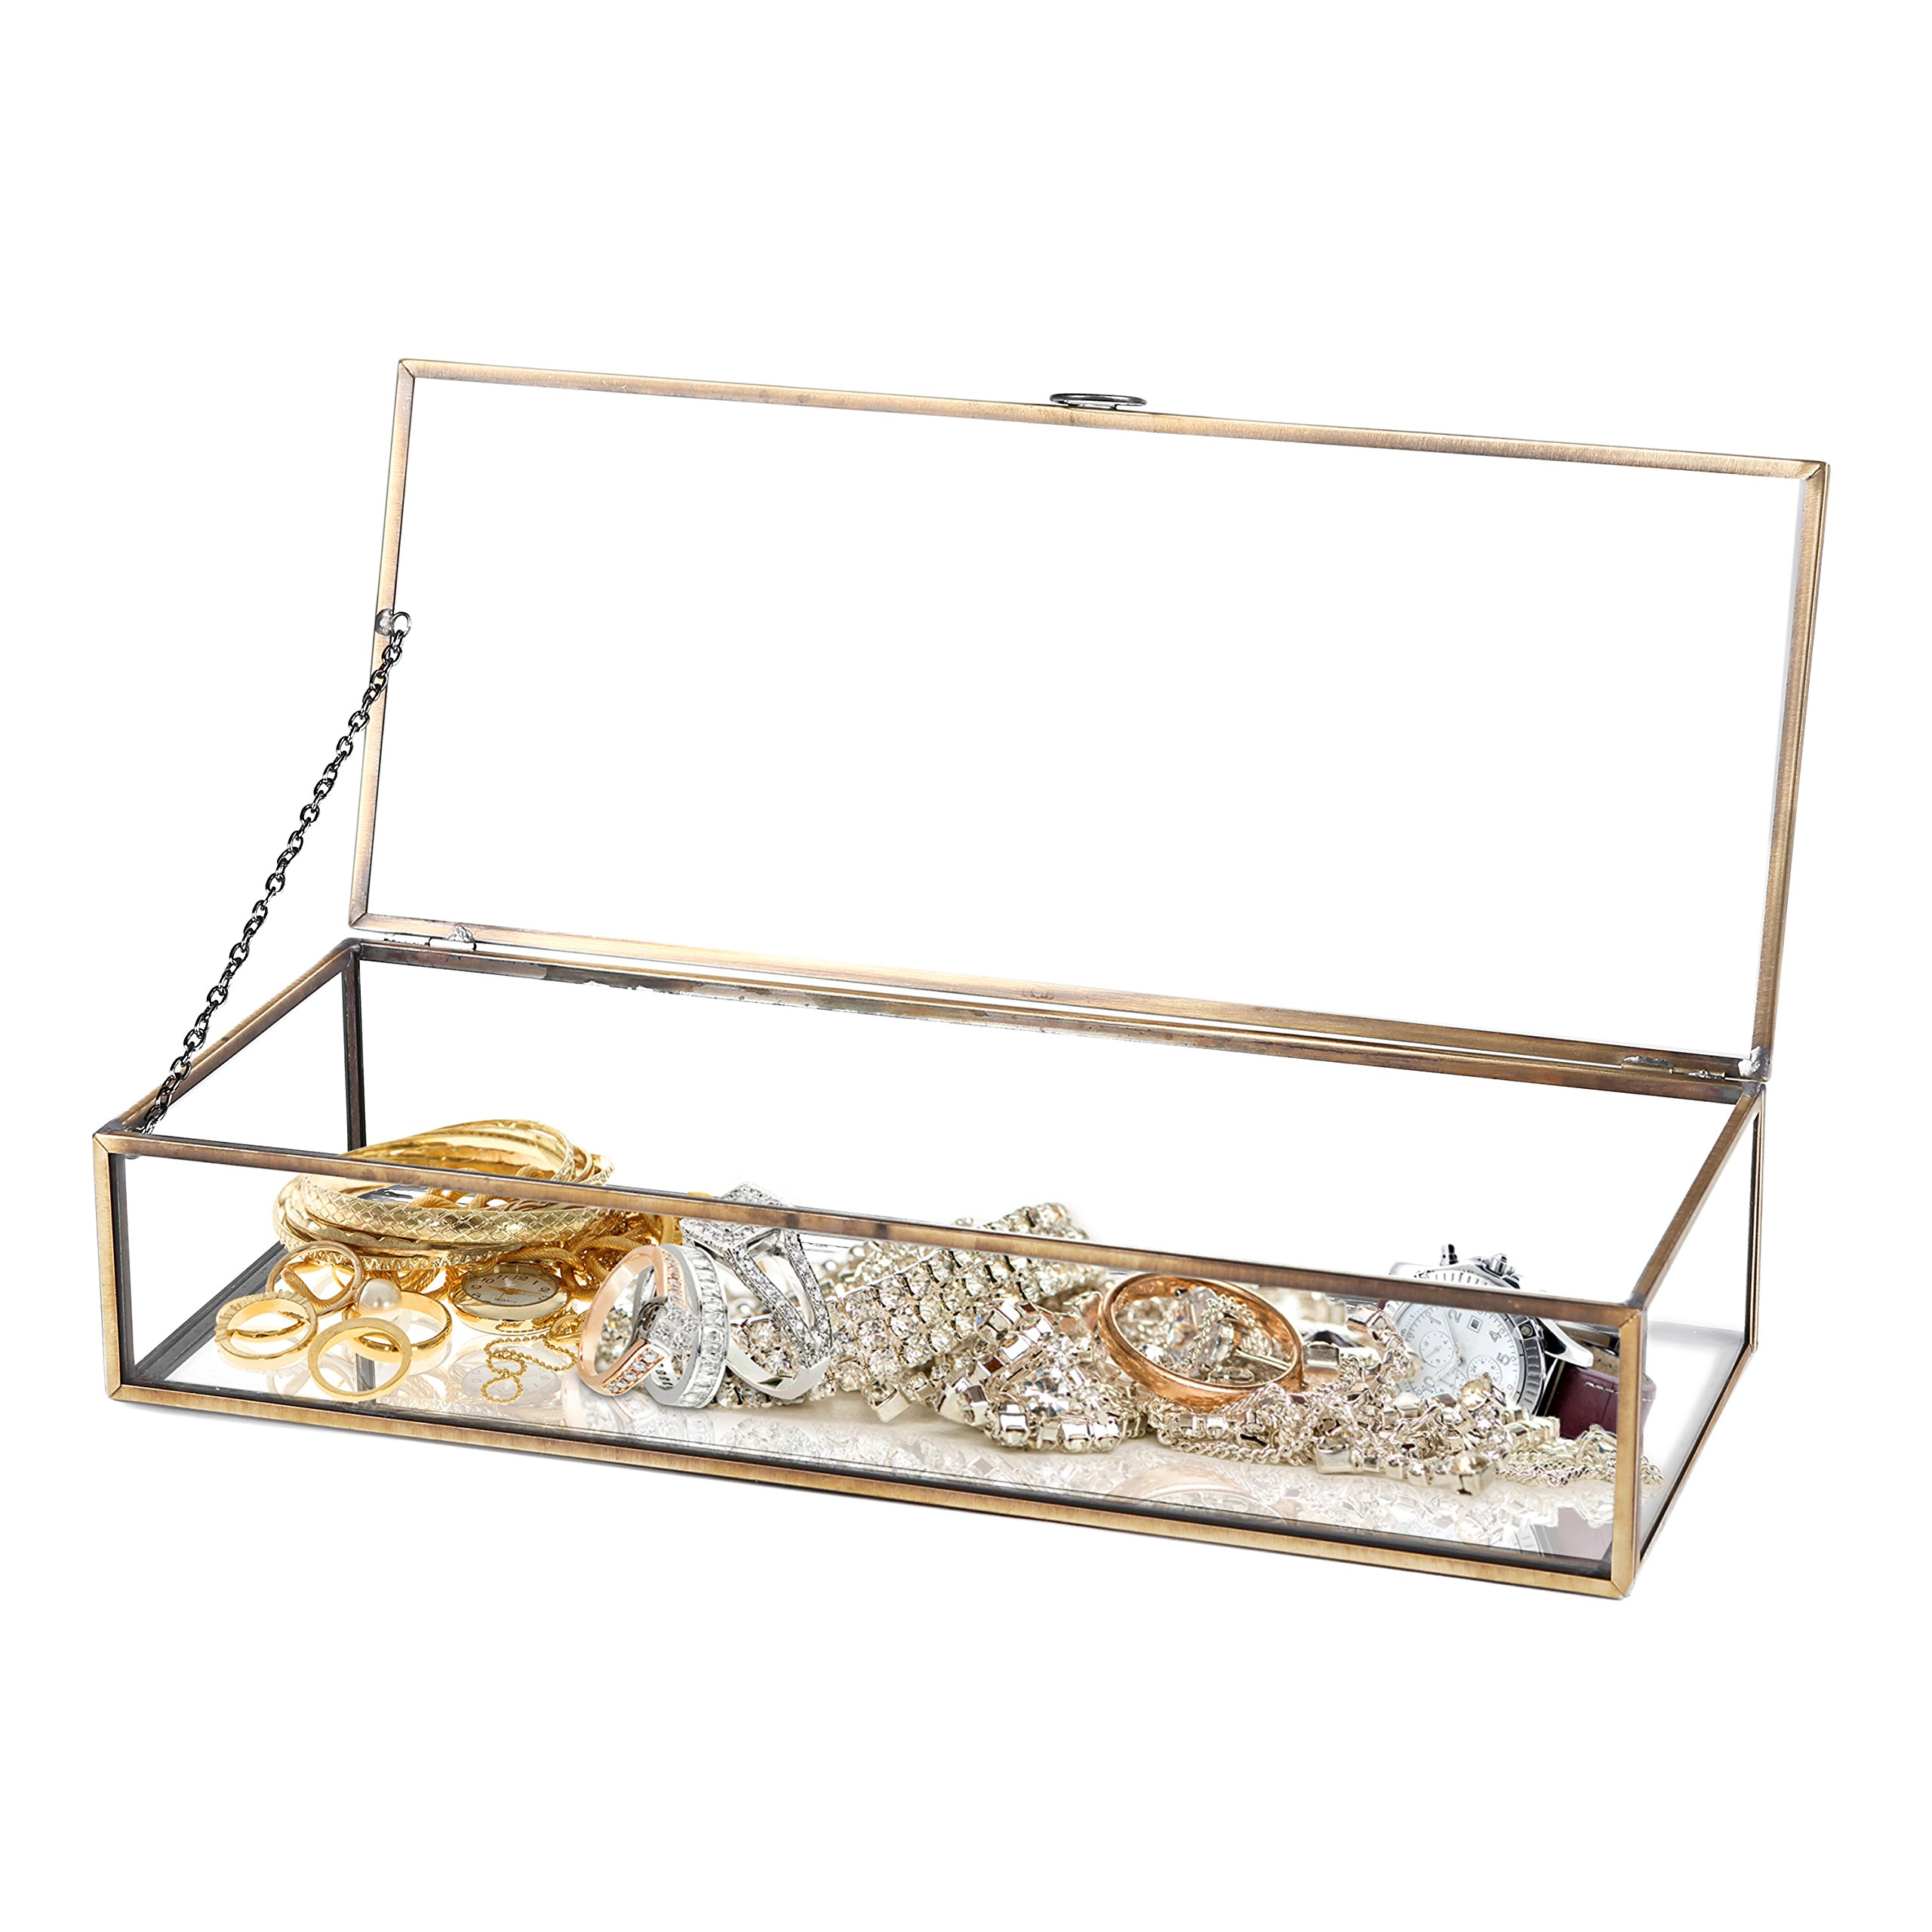 Vintage Style Brass Metal & Clear Glass Mirrored Shadow Box Jewelry Display Case w/Hinged Top Lid by MyGift